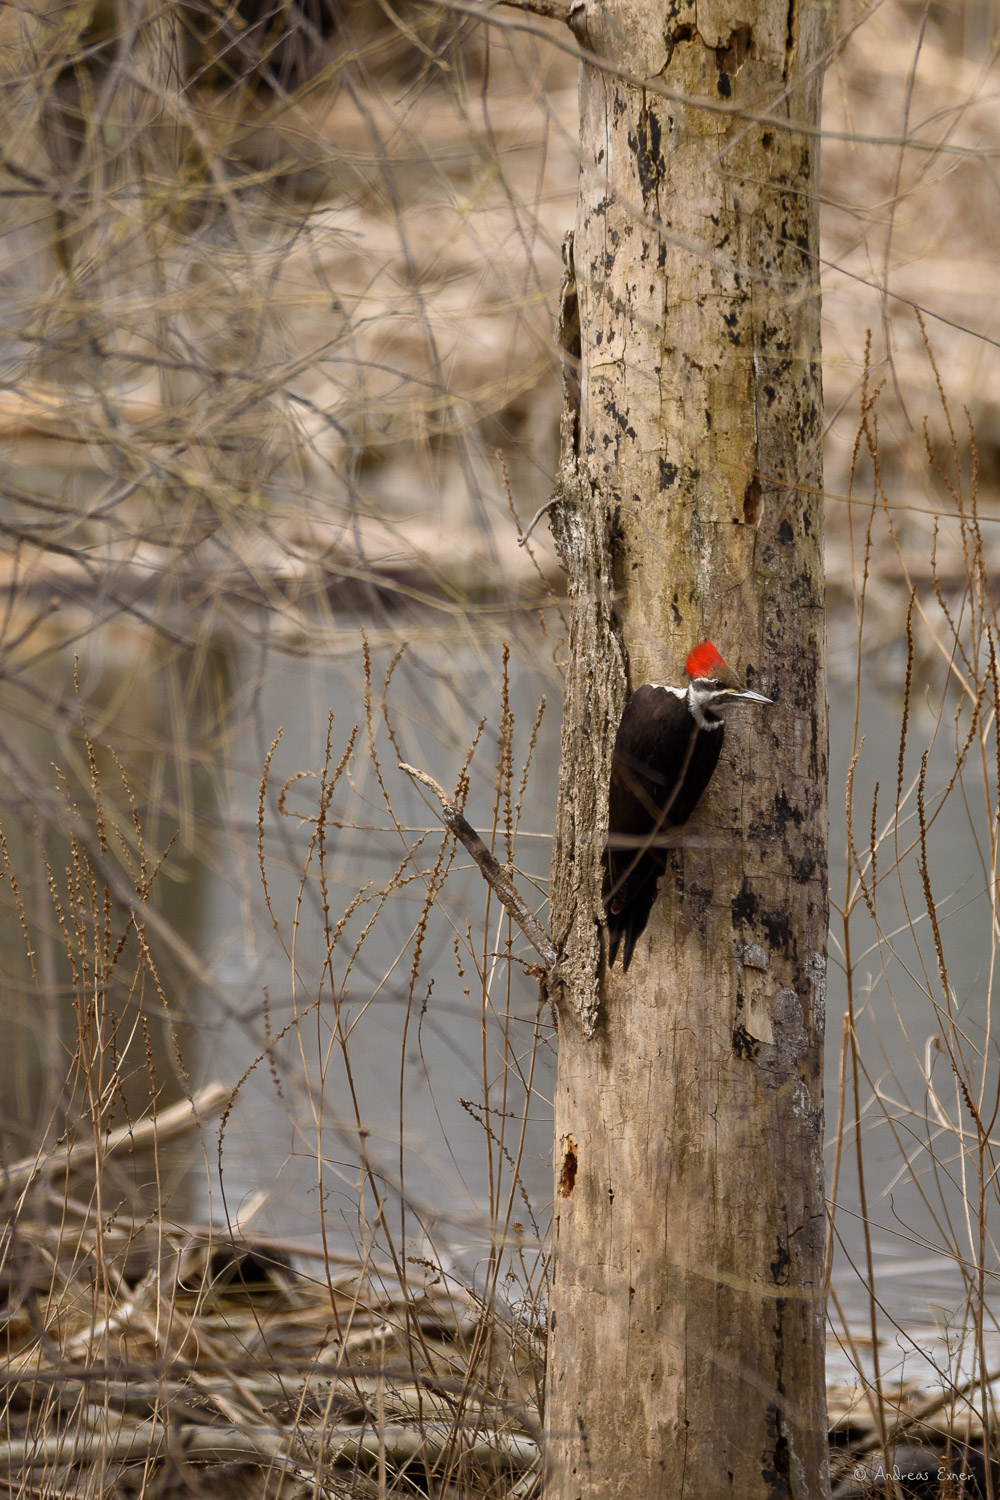 Female Pileated Woodpecker, Mississippi River, dam #9